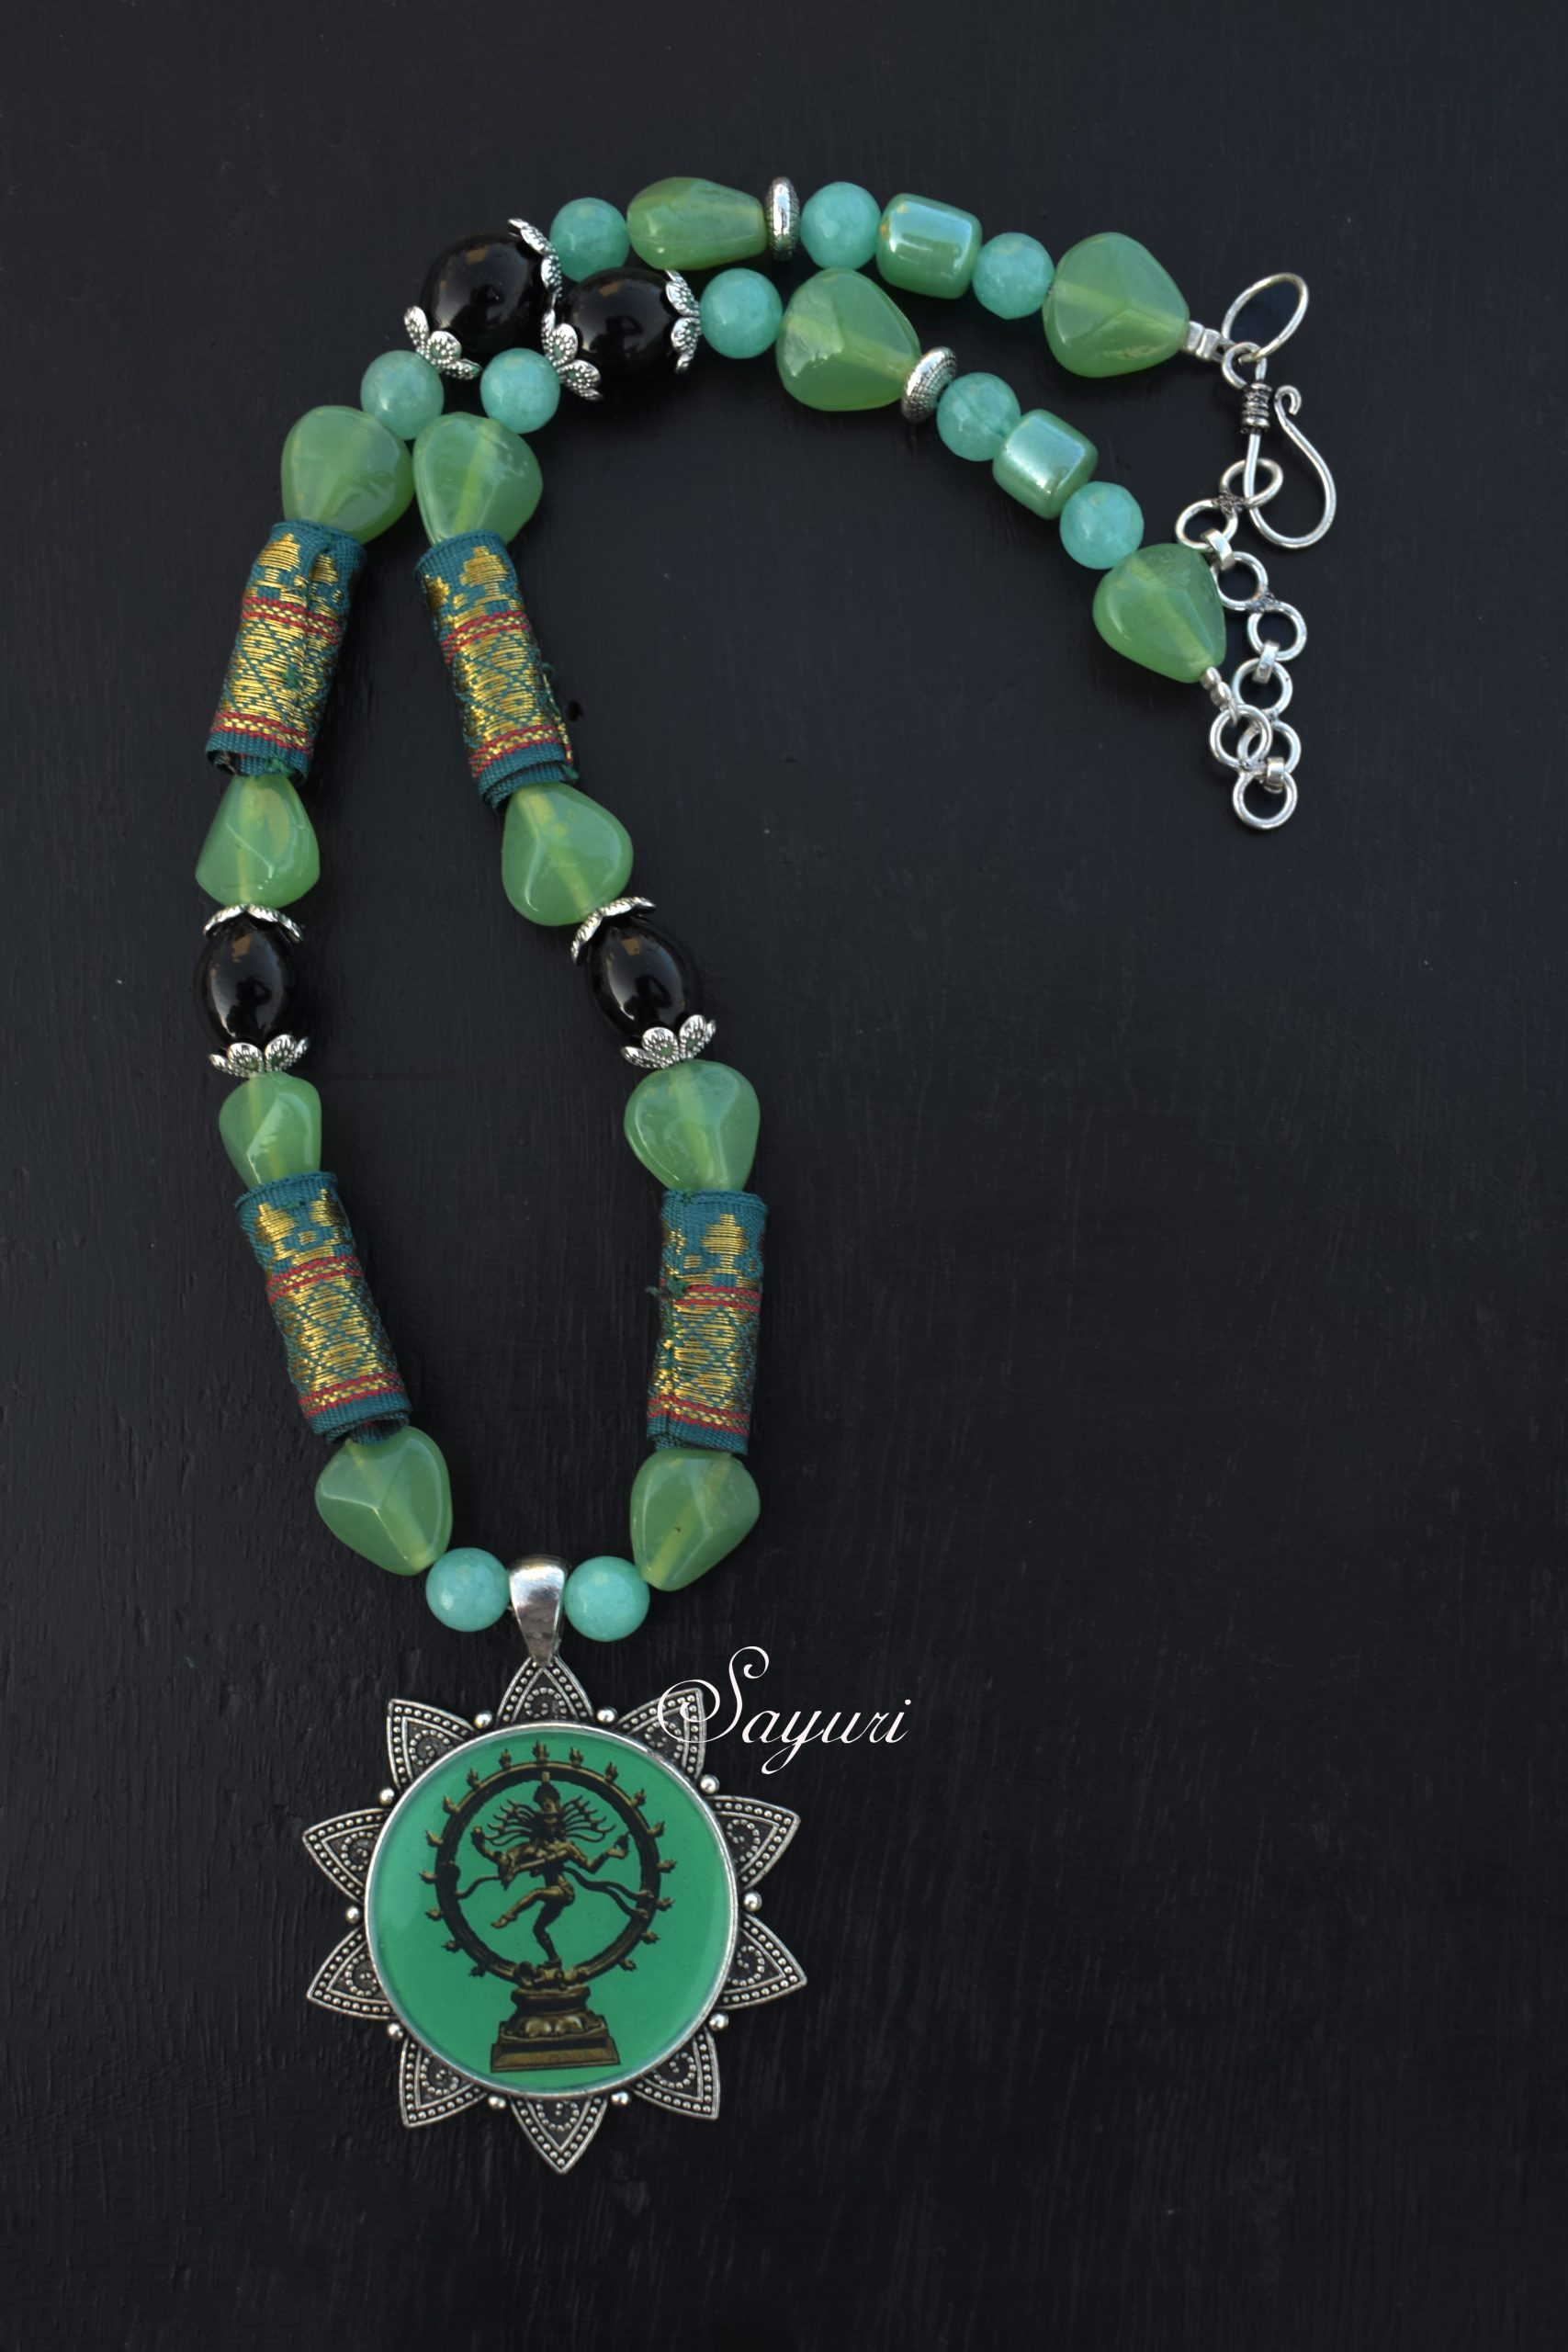 NP1217-DG Glass and agate bead necklace with Natraja pendant ₹ 850